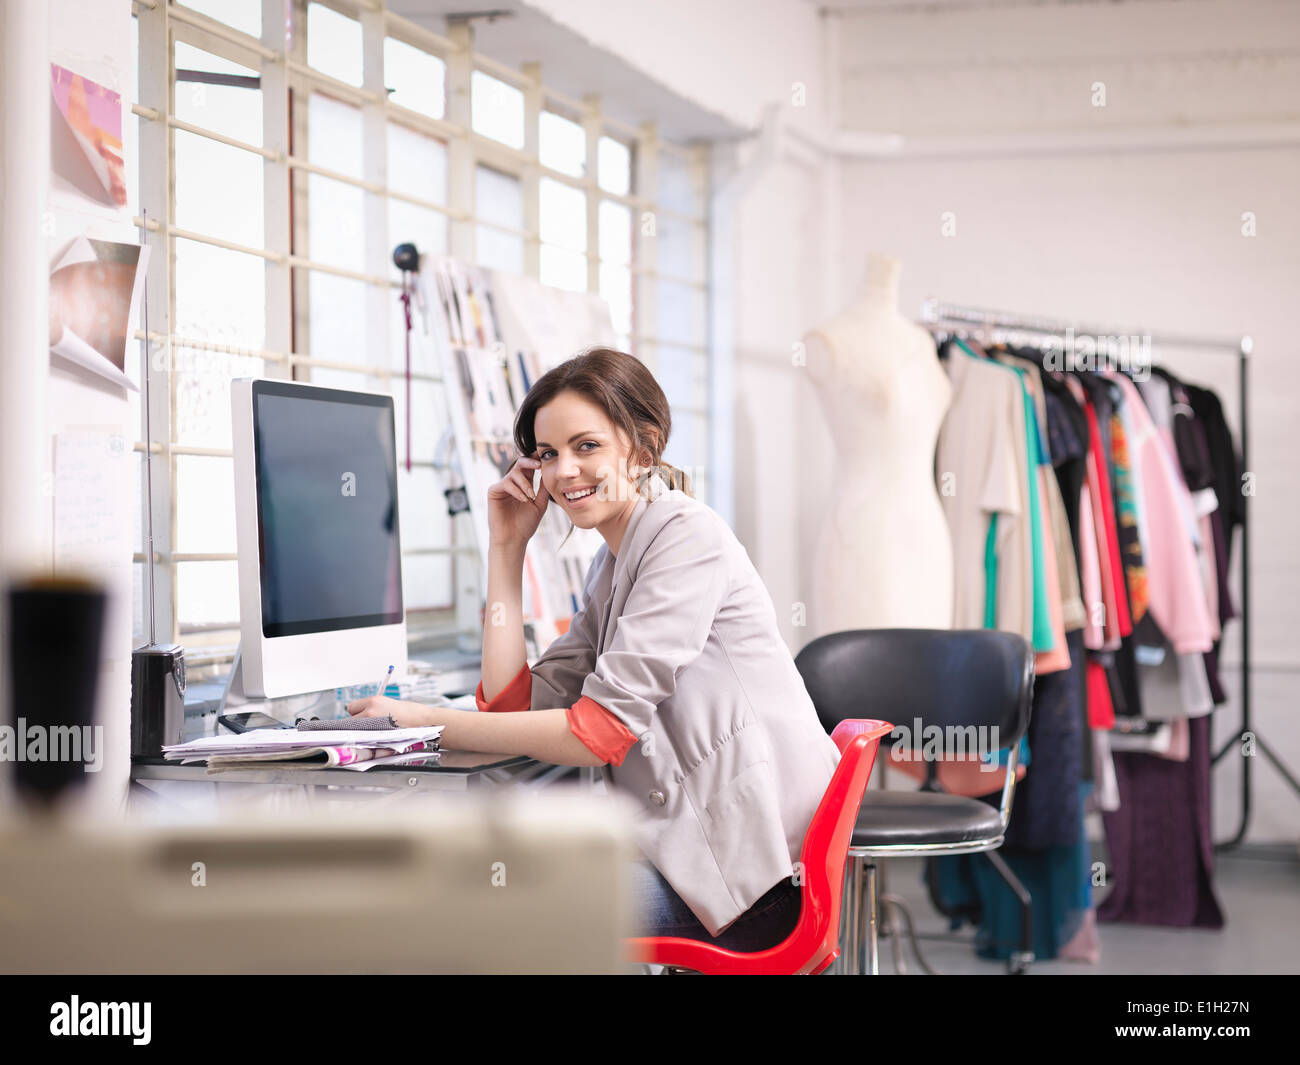 Fashion Designer Working At Computer In Fashion Design Studio Stock Photo Alamy